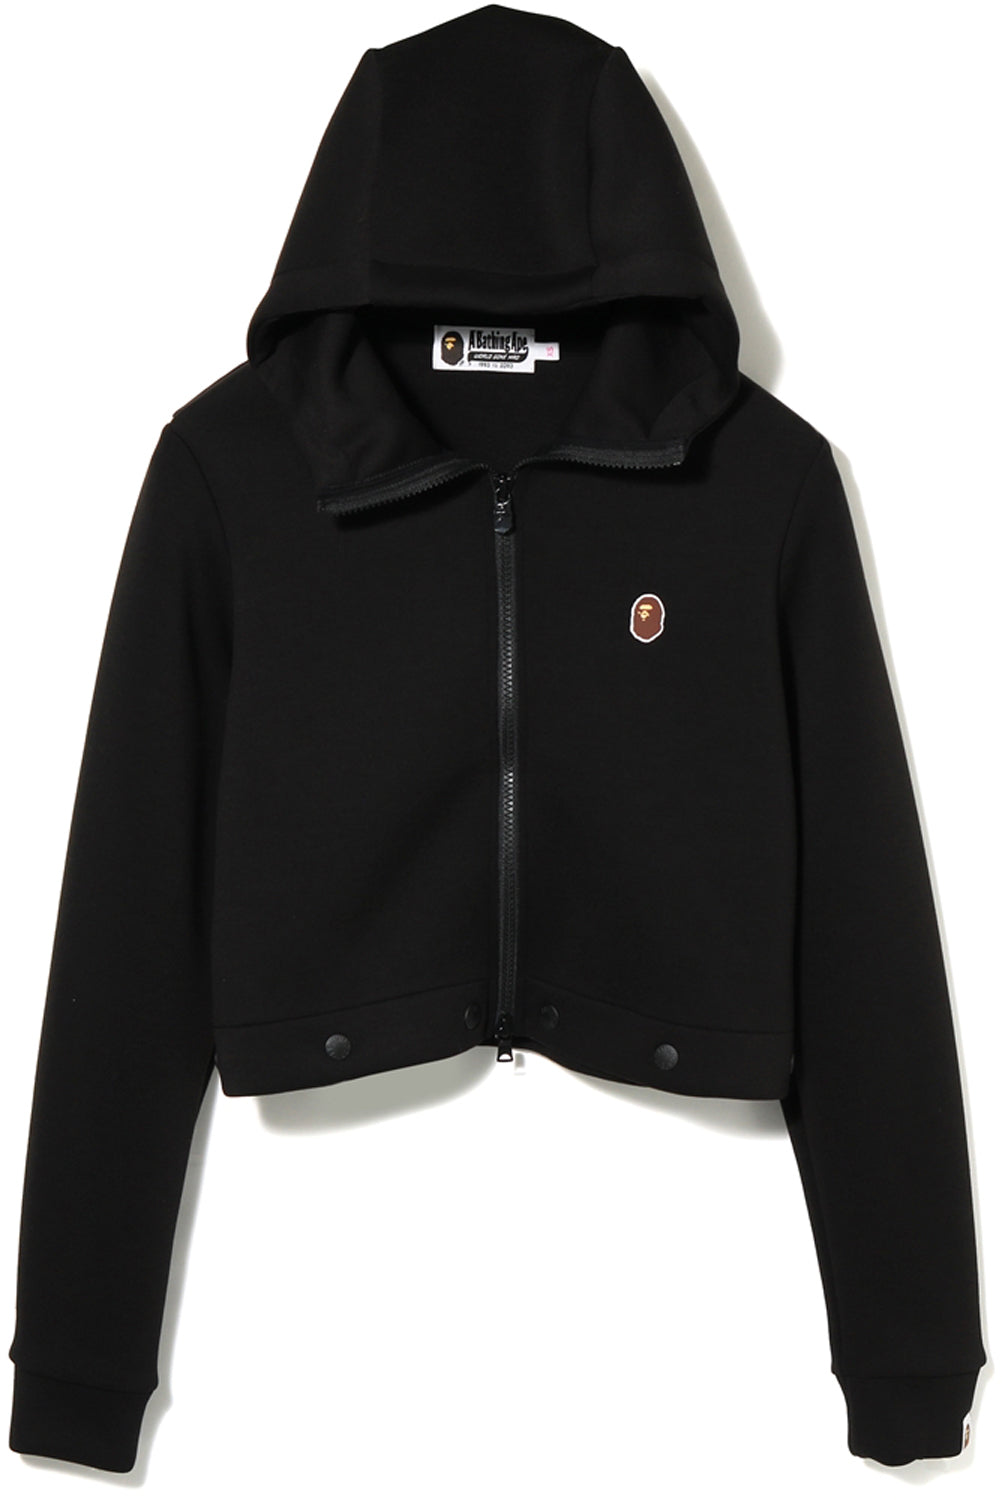 APE HEAD ONEPOINT 2WAY ZIP HOODIE LADIES